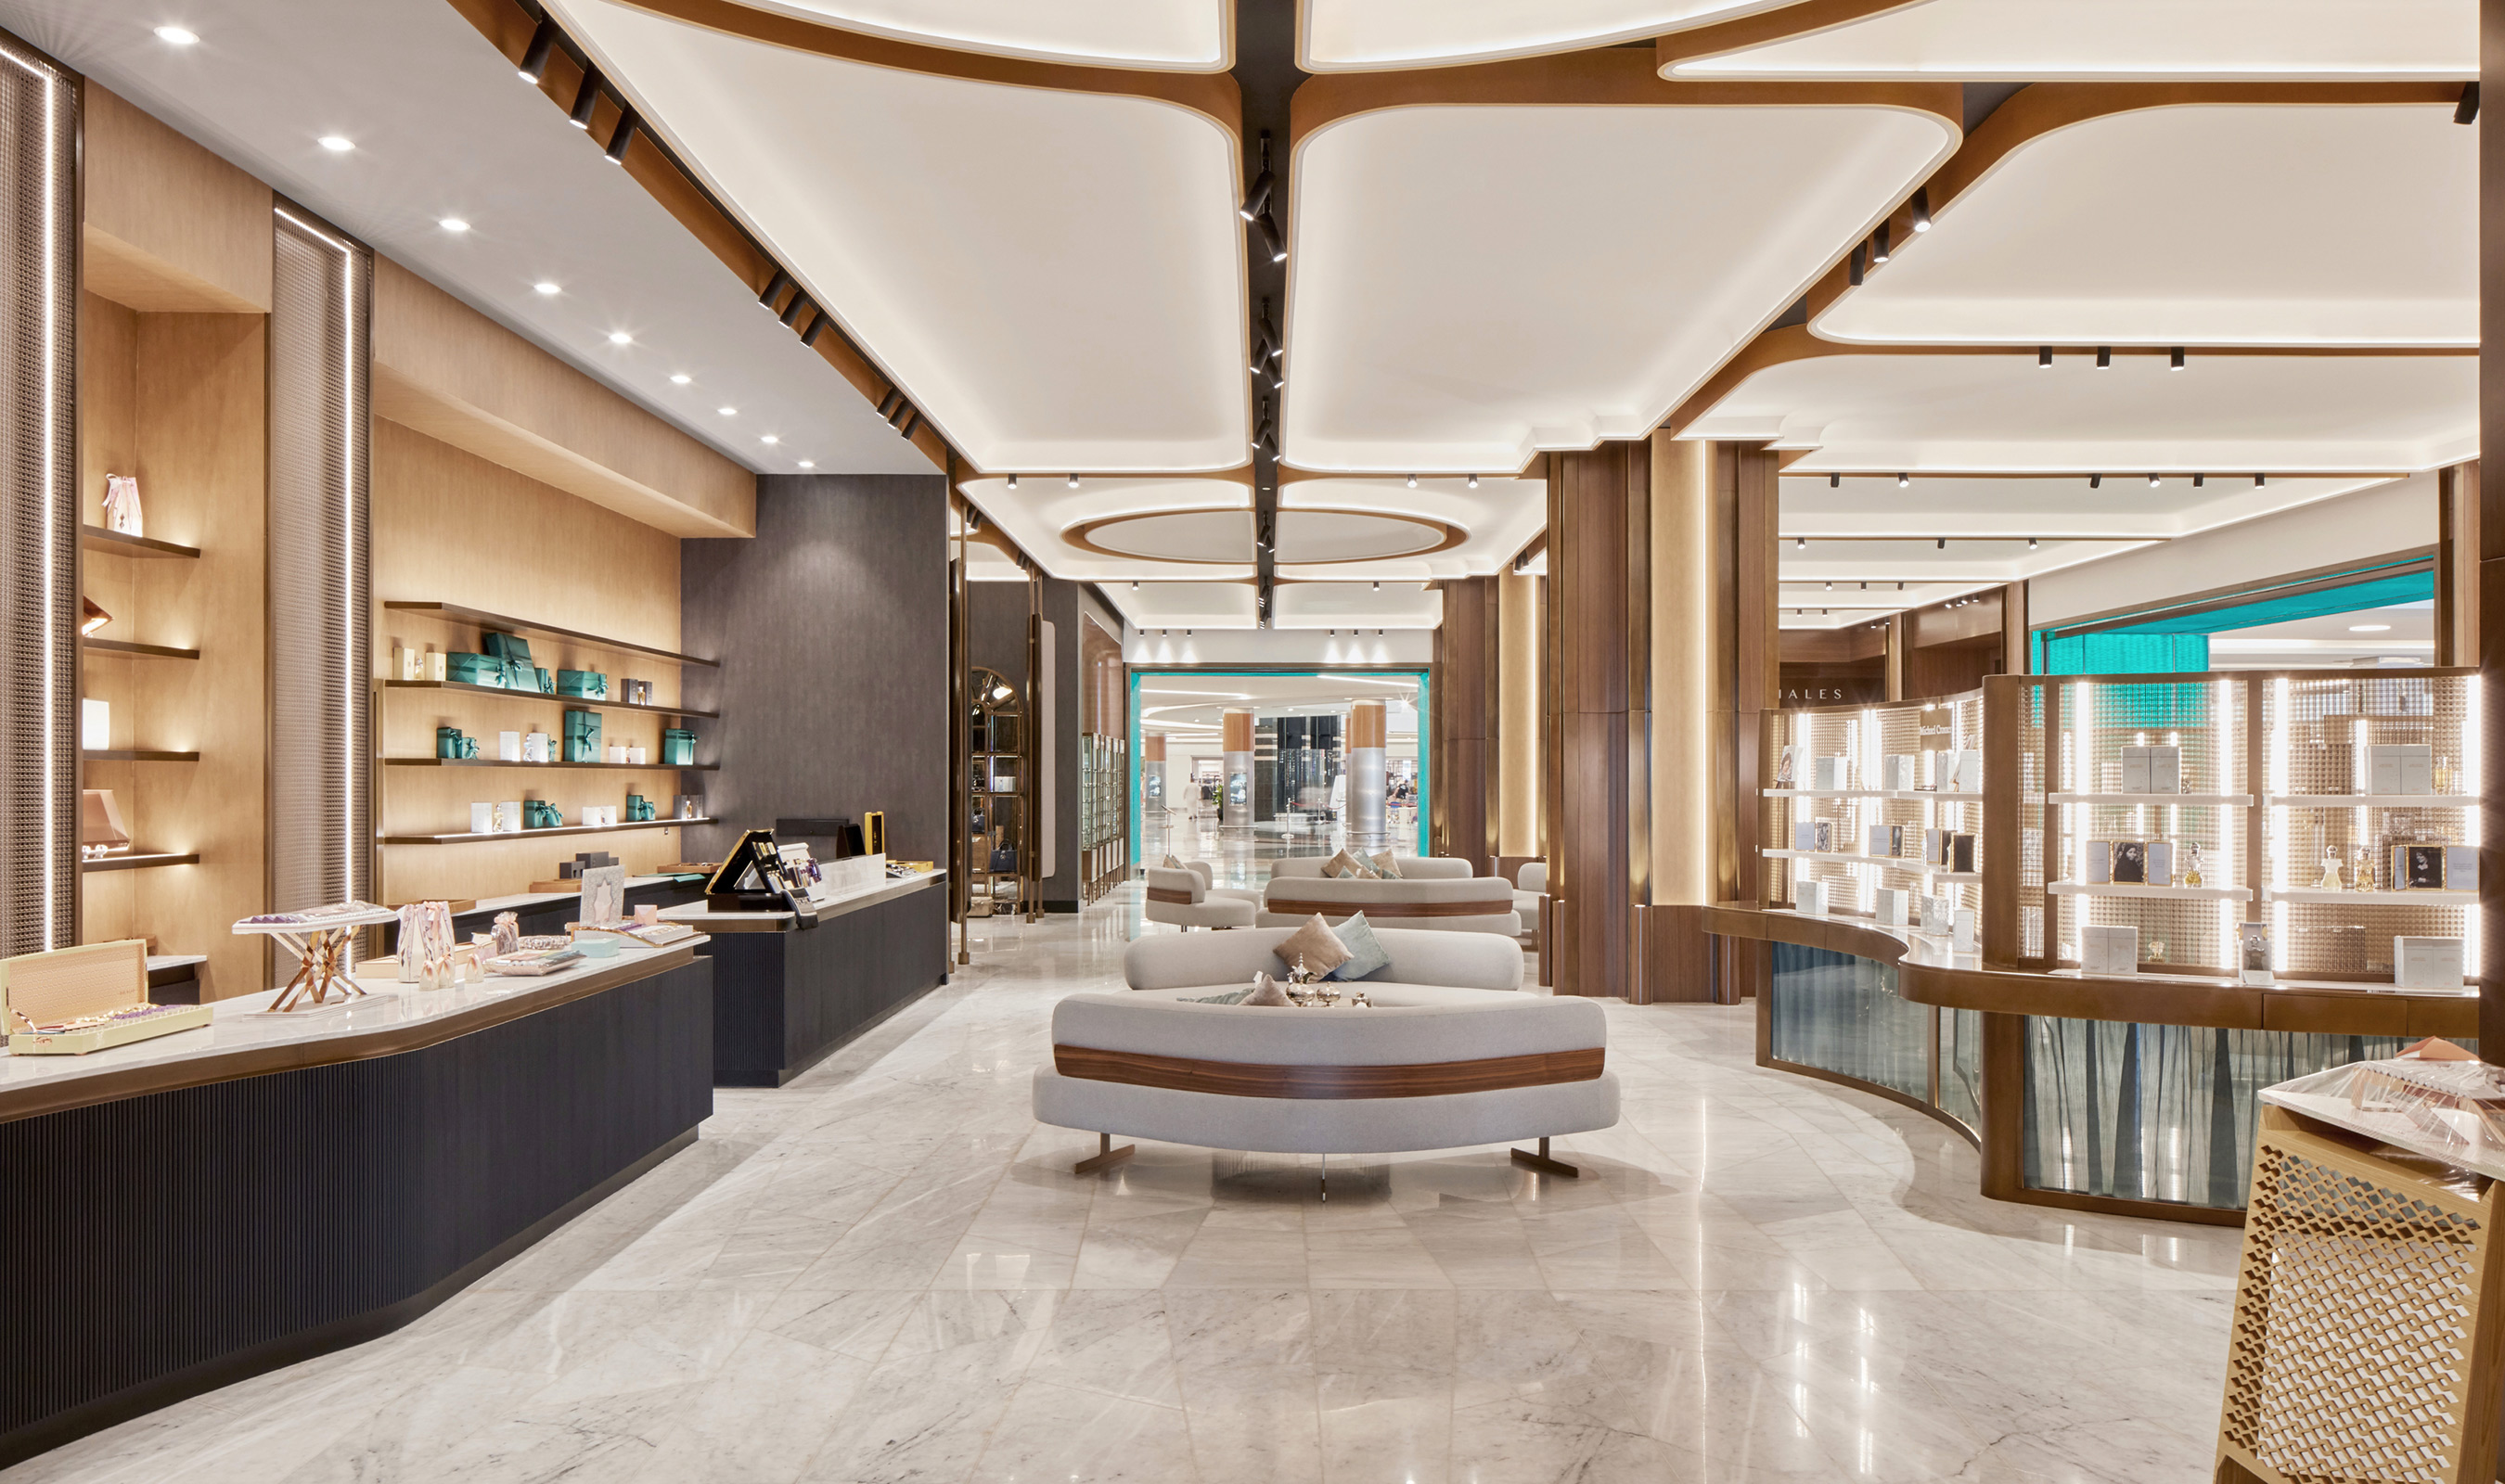 Wall cladding and retail displays at the HOB luxury store in Abu Dhabi use Banker Wire's M22-22 brass woven wire mesh.